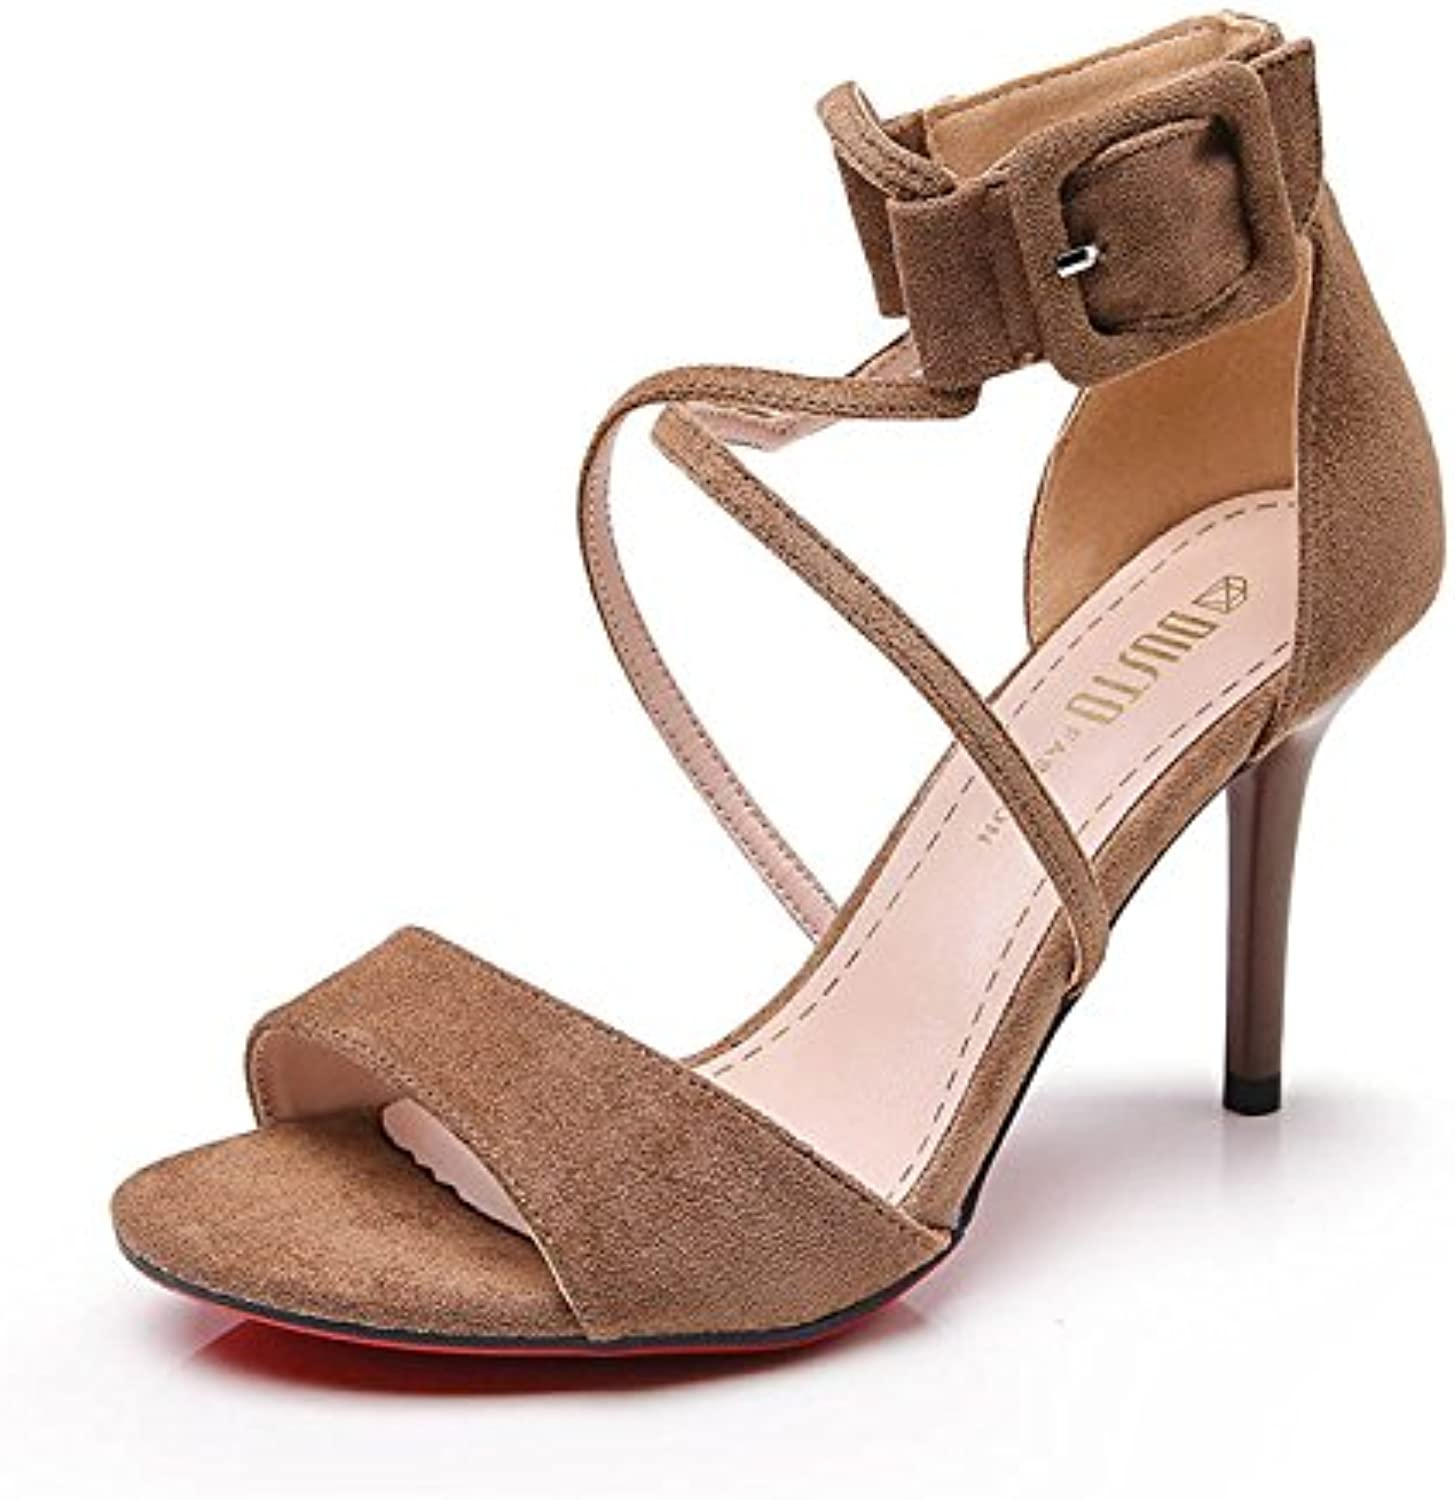 GTYW Party Damen Sandalen Riemchen High Heels Schlanke Sandalen TPU Offene Spitze Damenschuhe High HeelsBrown-37